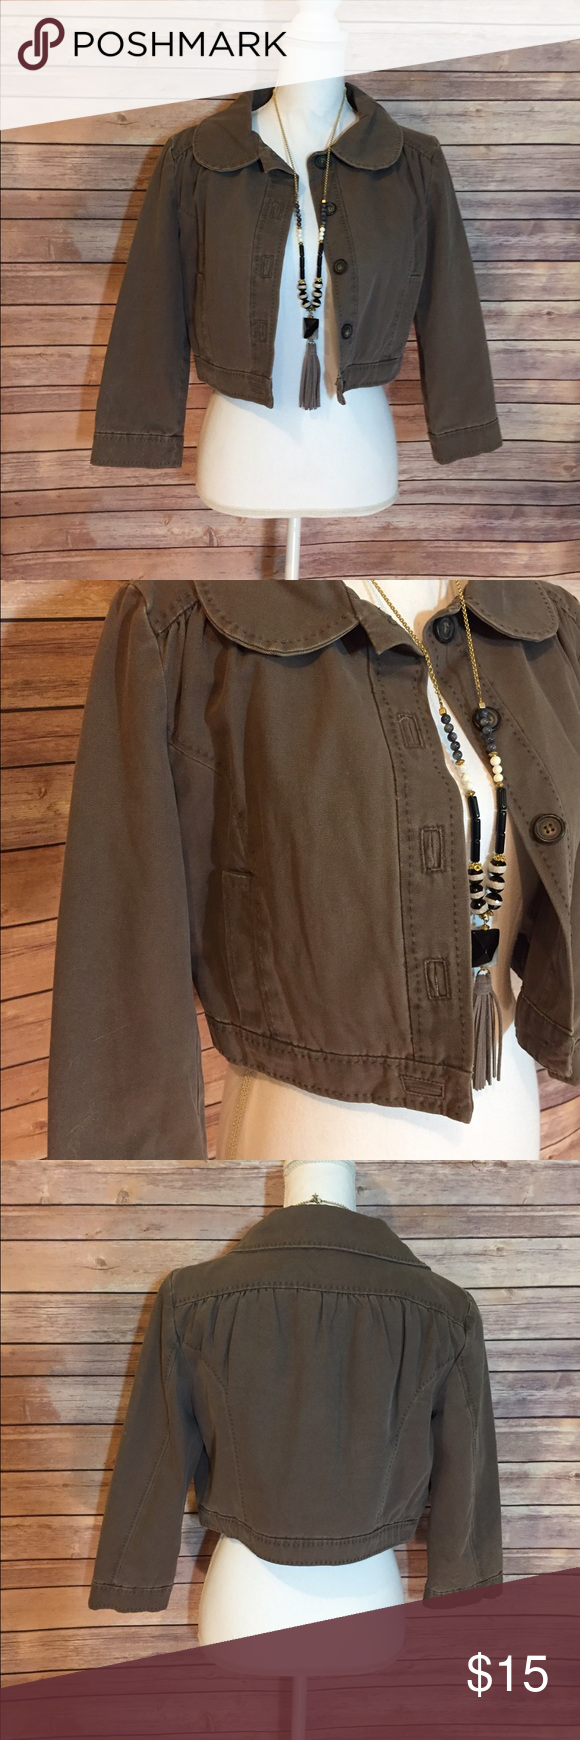 "MNG cropped jacket Excellent condition MNG cropped jacket, taupe color 15""L 20""B MNG Jackets & Coats"